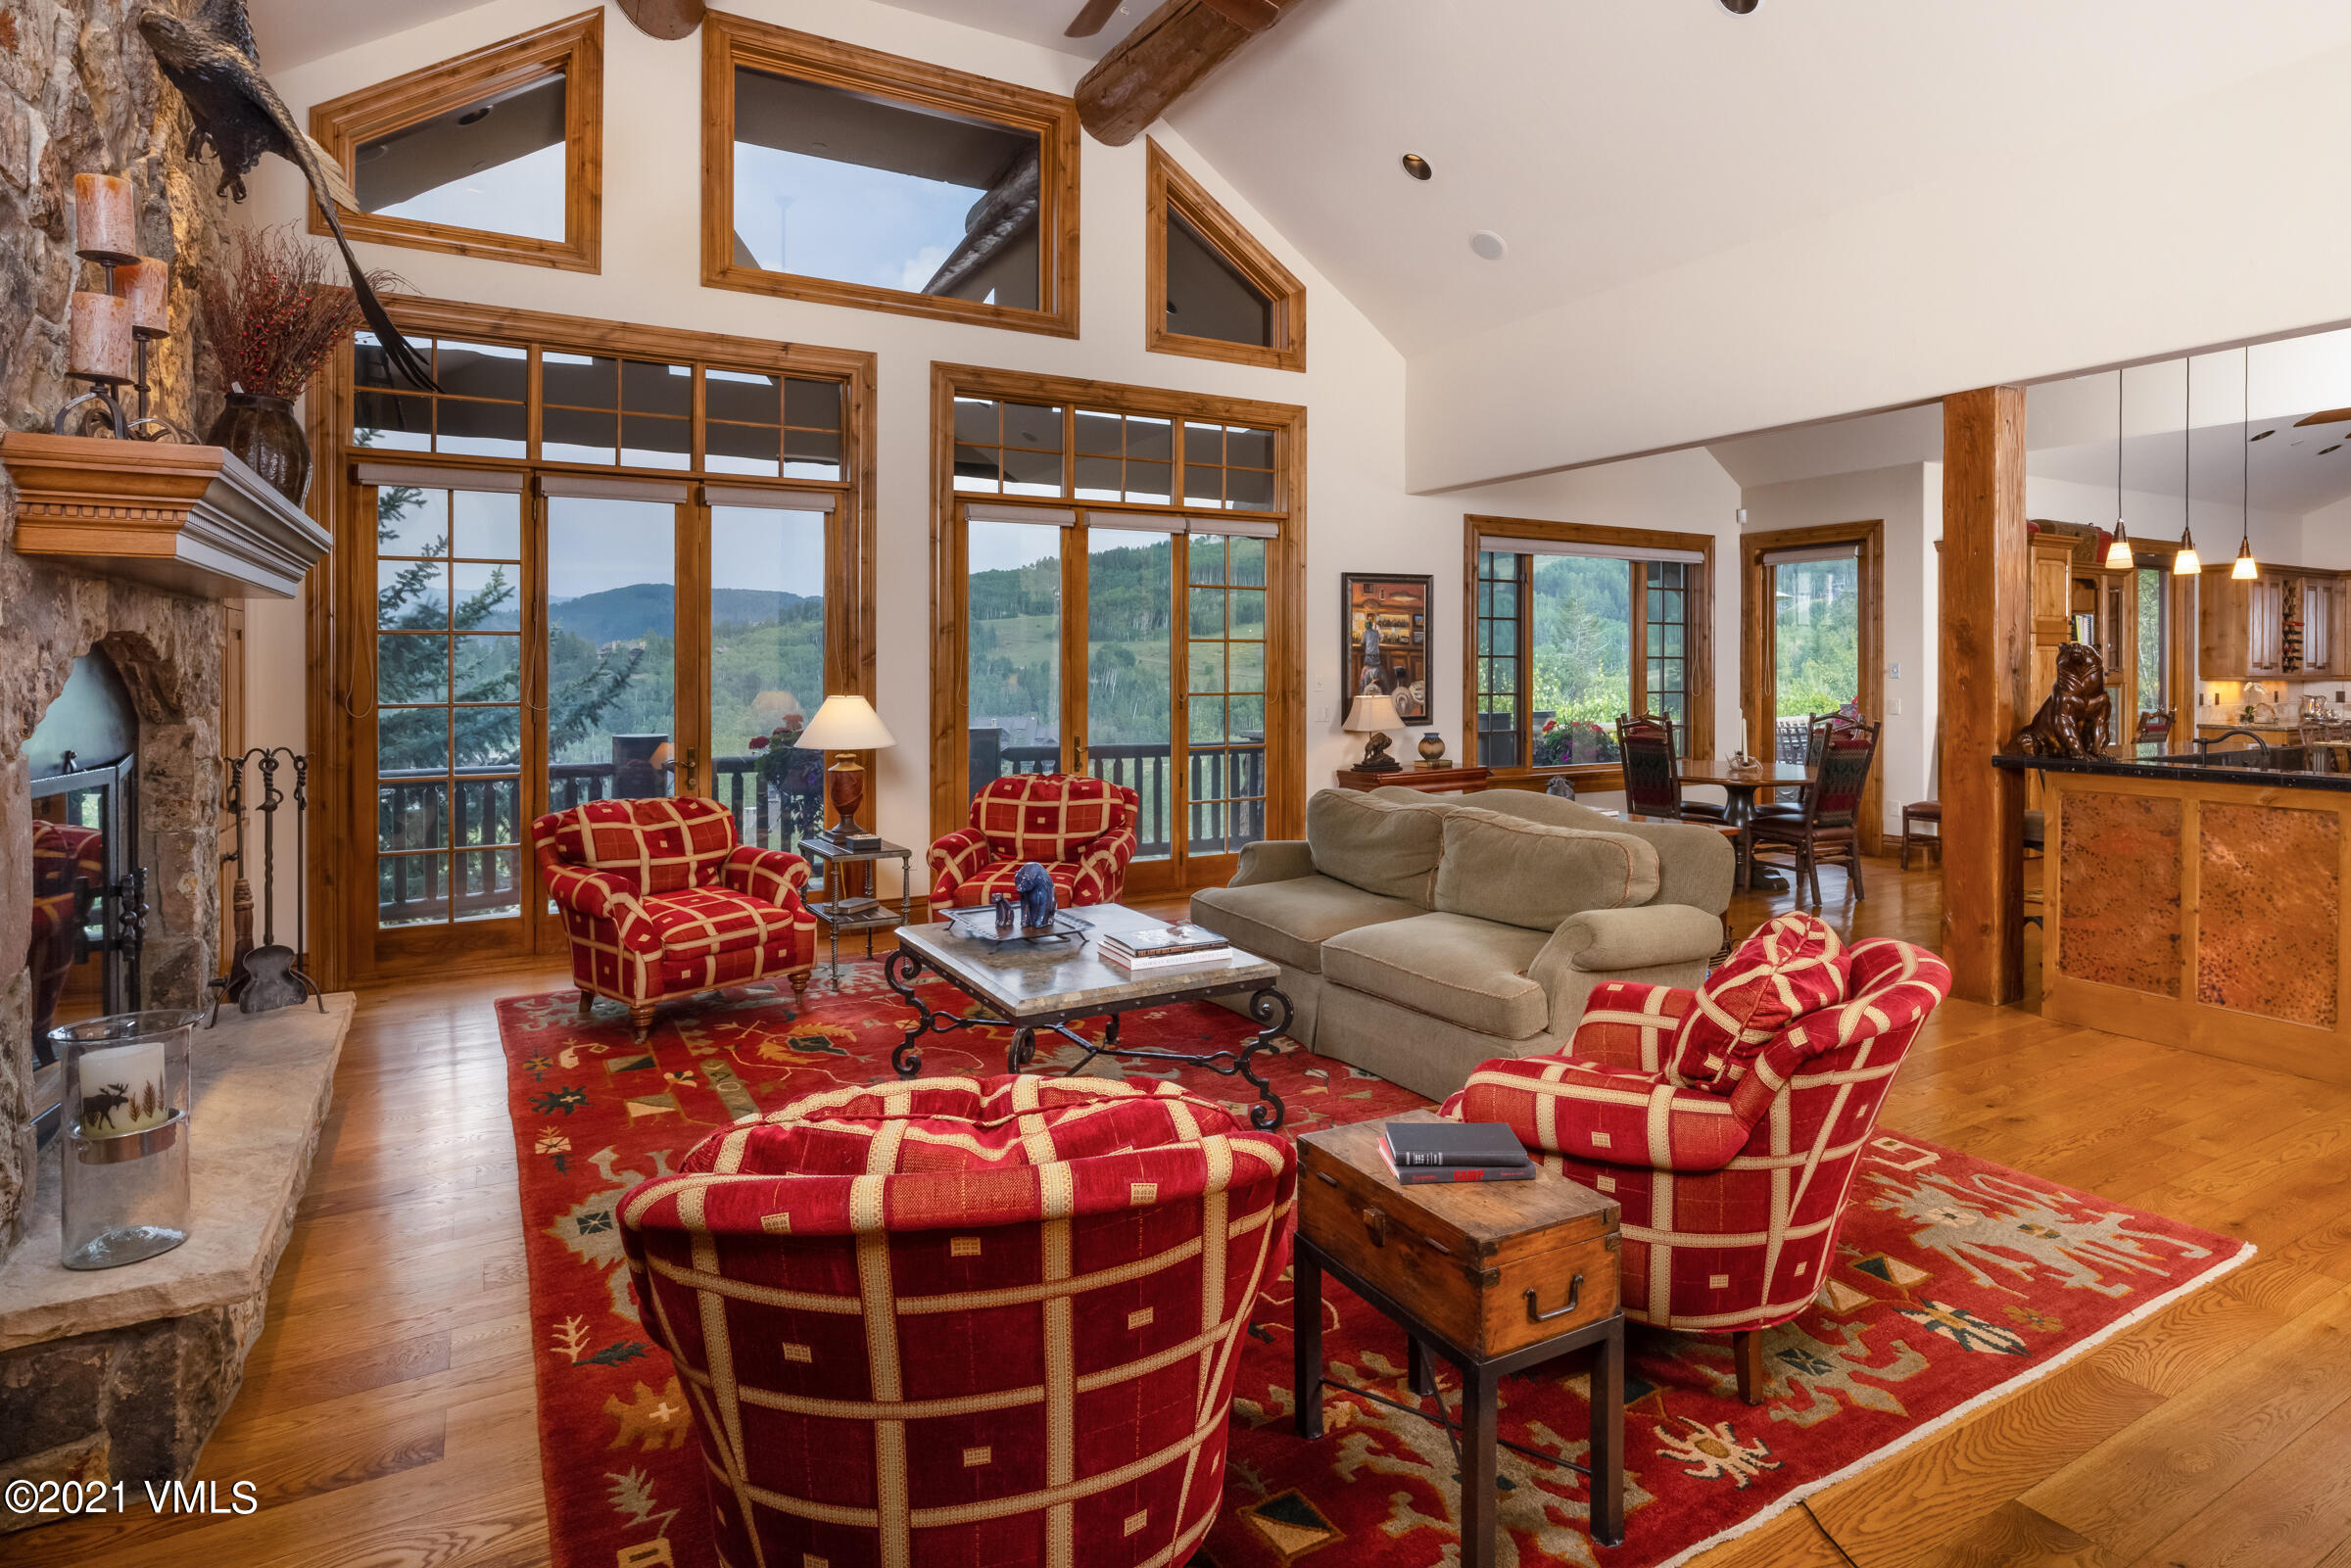 Opportunity to own a lovely home low on the mountain, lower elevation, and one of the closest single-family residences to The Ritz-Carlton(r) with a very comfortable and easy flowing floor plan. Perfect ski-in/ski-out to the back door via the maintained Ridge Rider Ski-Way. Dramatic and envied, easterly views of the Gore Range to watch those glorious mountain sunrises as well as the full moon lighting up the entire valley in front of you. You are greeted when you enter the home with a wonderful great room with soaring vaulted ceilings, large fireplace and log accents all directing you to the incredible views outside the large expansive windows. Main level primary suite with adjoining office; spacious bath and over-sized closet. First level offers a large stone deck and fire pit, all facing the ski slopes along with a built-in bar, separate dining room and den.  All guest bedrooms have en-suite baths with walk-in closets. Gracious sized lower level with ultra-high ceilings, family room with a bar and stone fireplace. Additional game room and ski room perfect for getting ready to enjoy the slopes. Lower-level patio includes a private hot tub. Two laundry rooms, 3-car garage. The winning combination of attributes all within this very exclusive, private, and secure resort just a short walk or minutes away from all the wonderful restaurants and luxuries of The Ritz-Carlton(r).